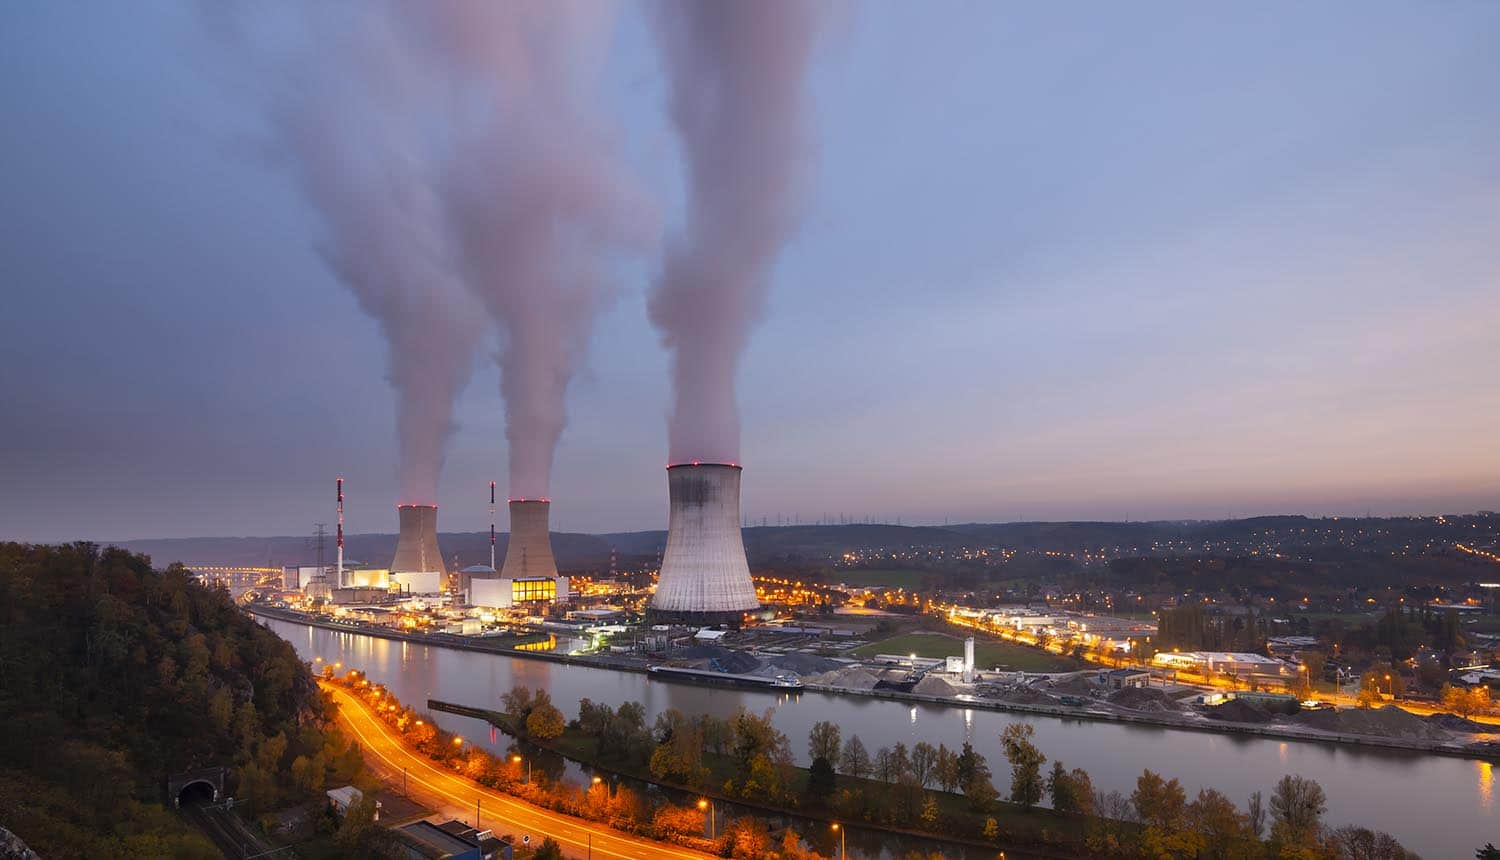 A large nuclear power station on the U.S. power grid by a river at dusk